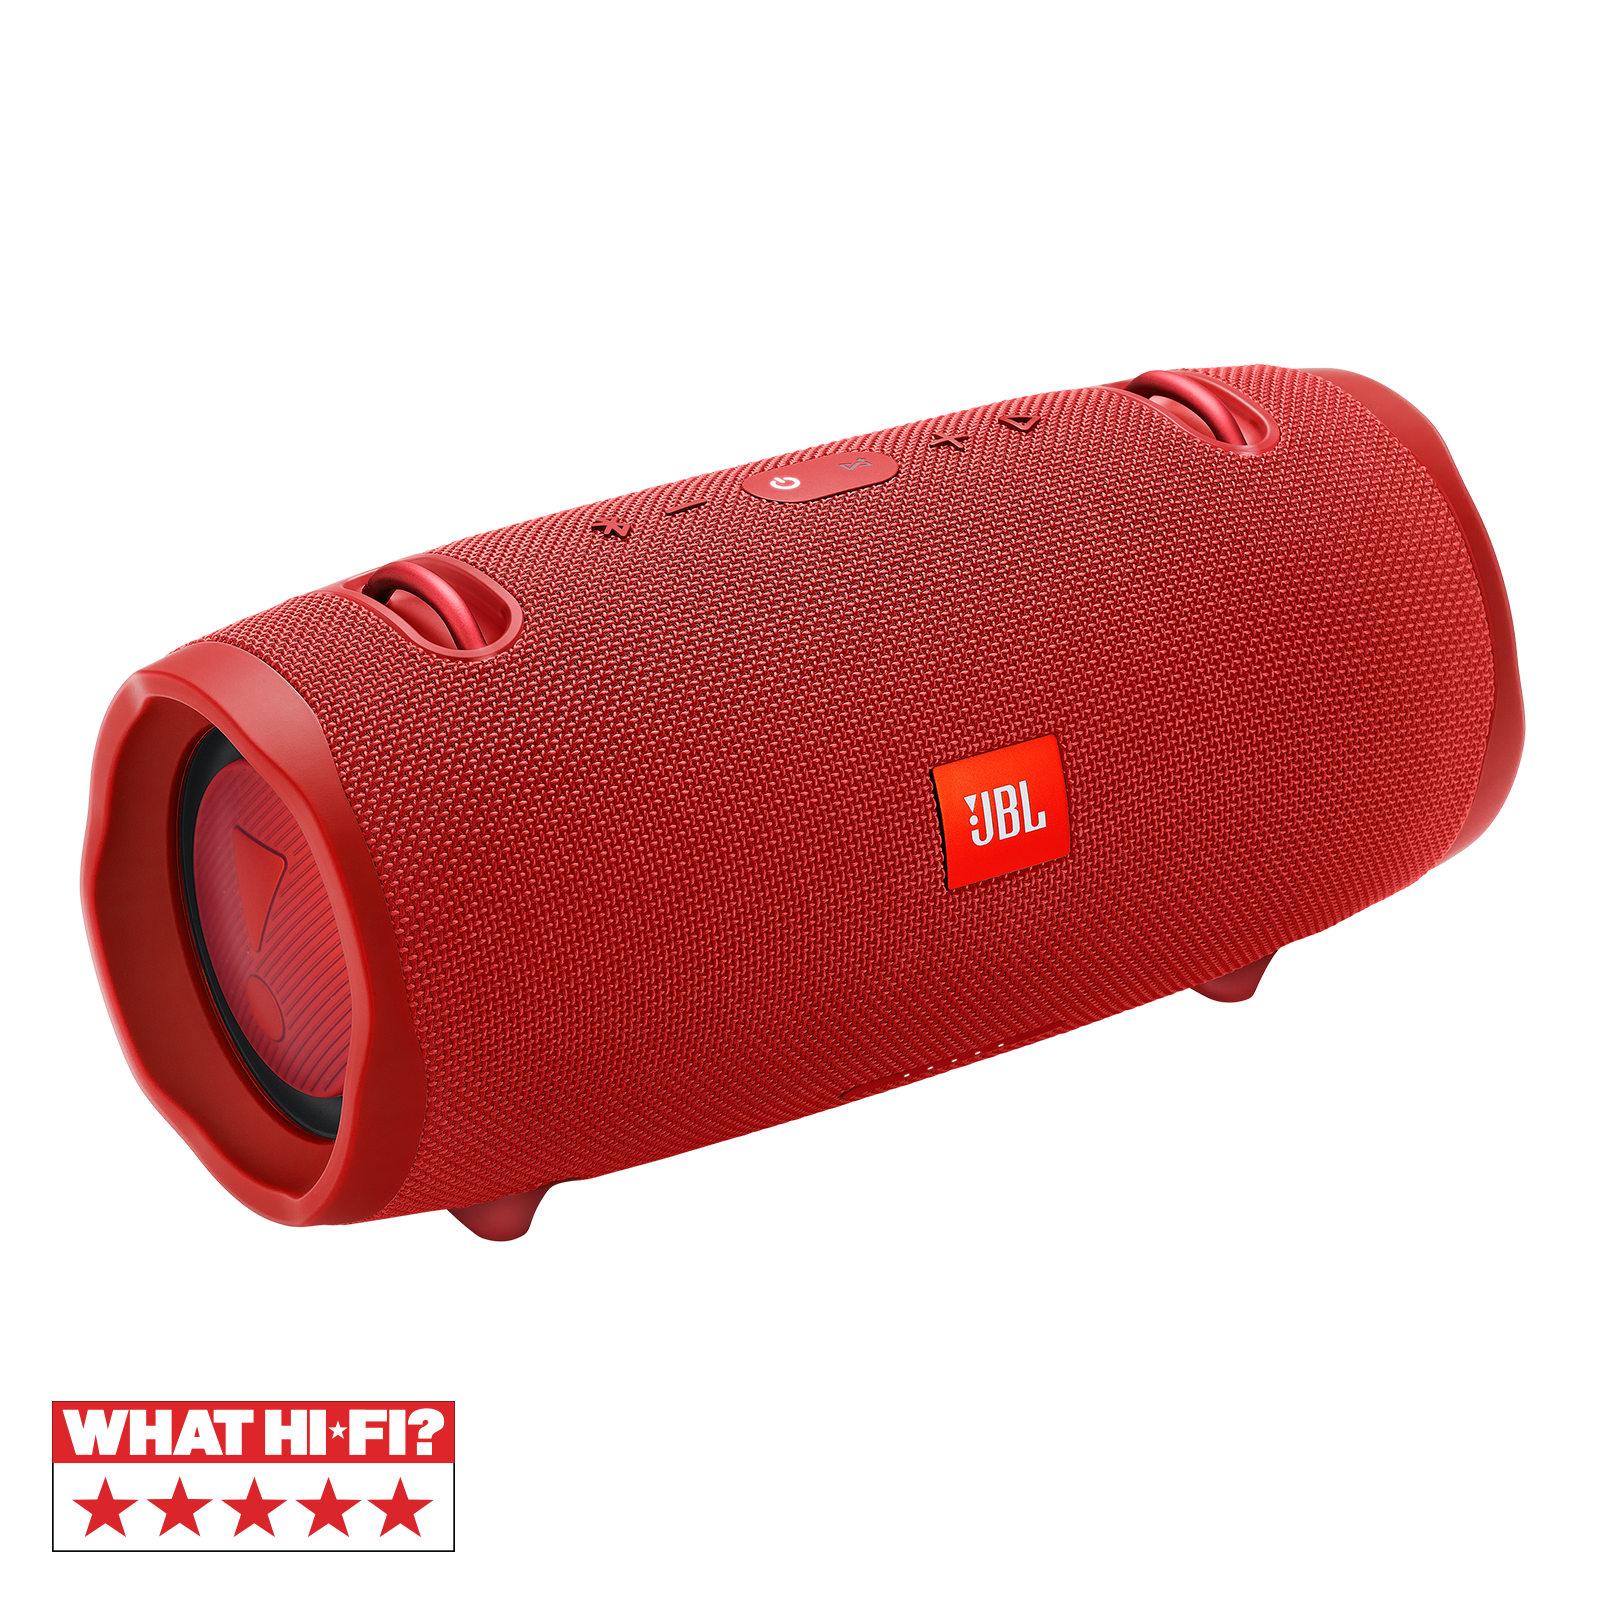 JBL Xtreme 2 refurbished Red